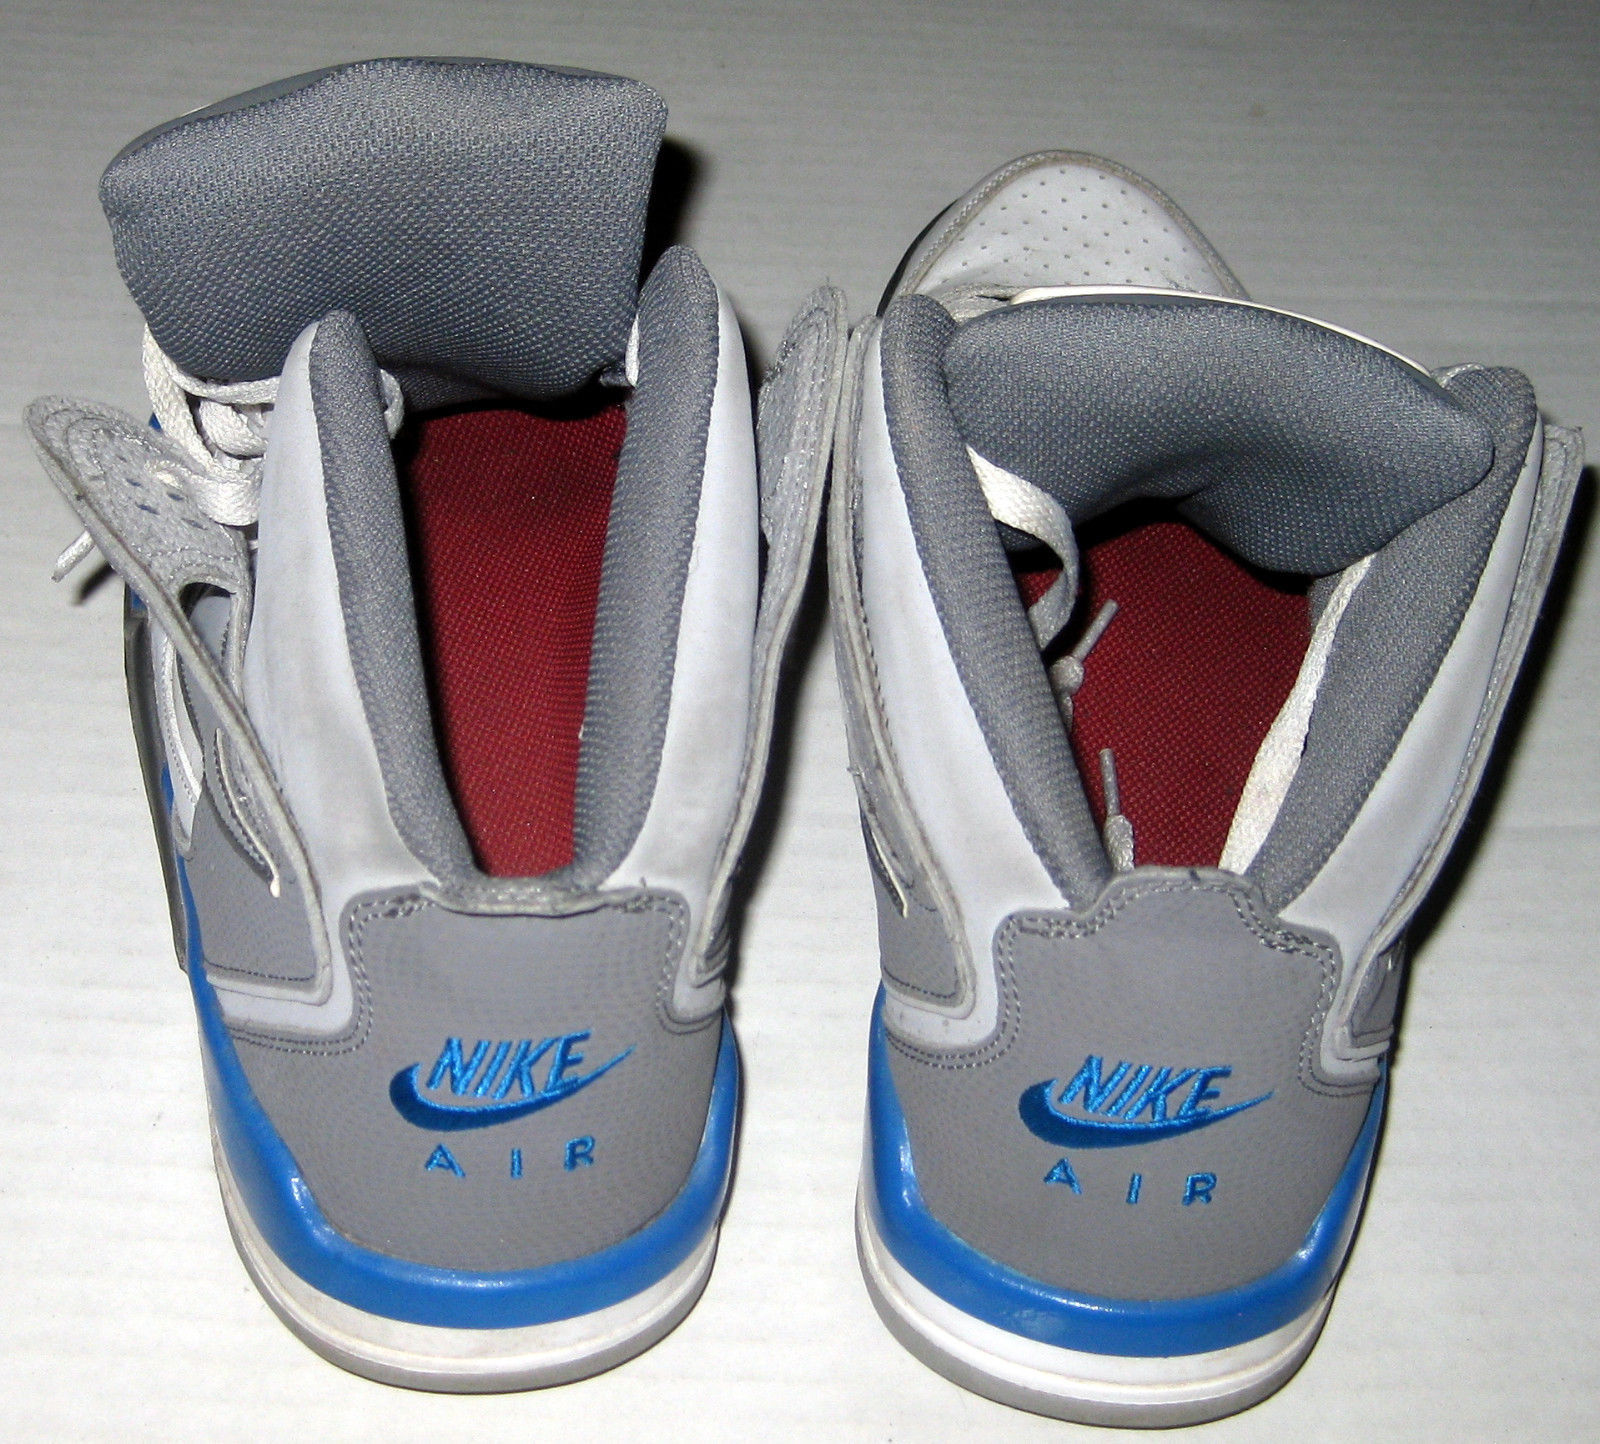 the best attitude 6f621 041ac ... Nike Air Flight Falcon Shoes Size 10.5 White Gray Blue ...